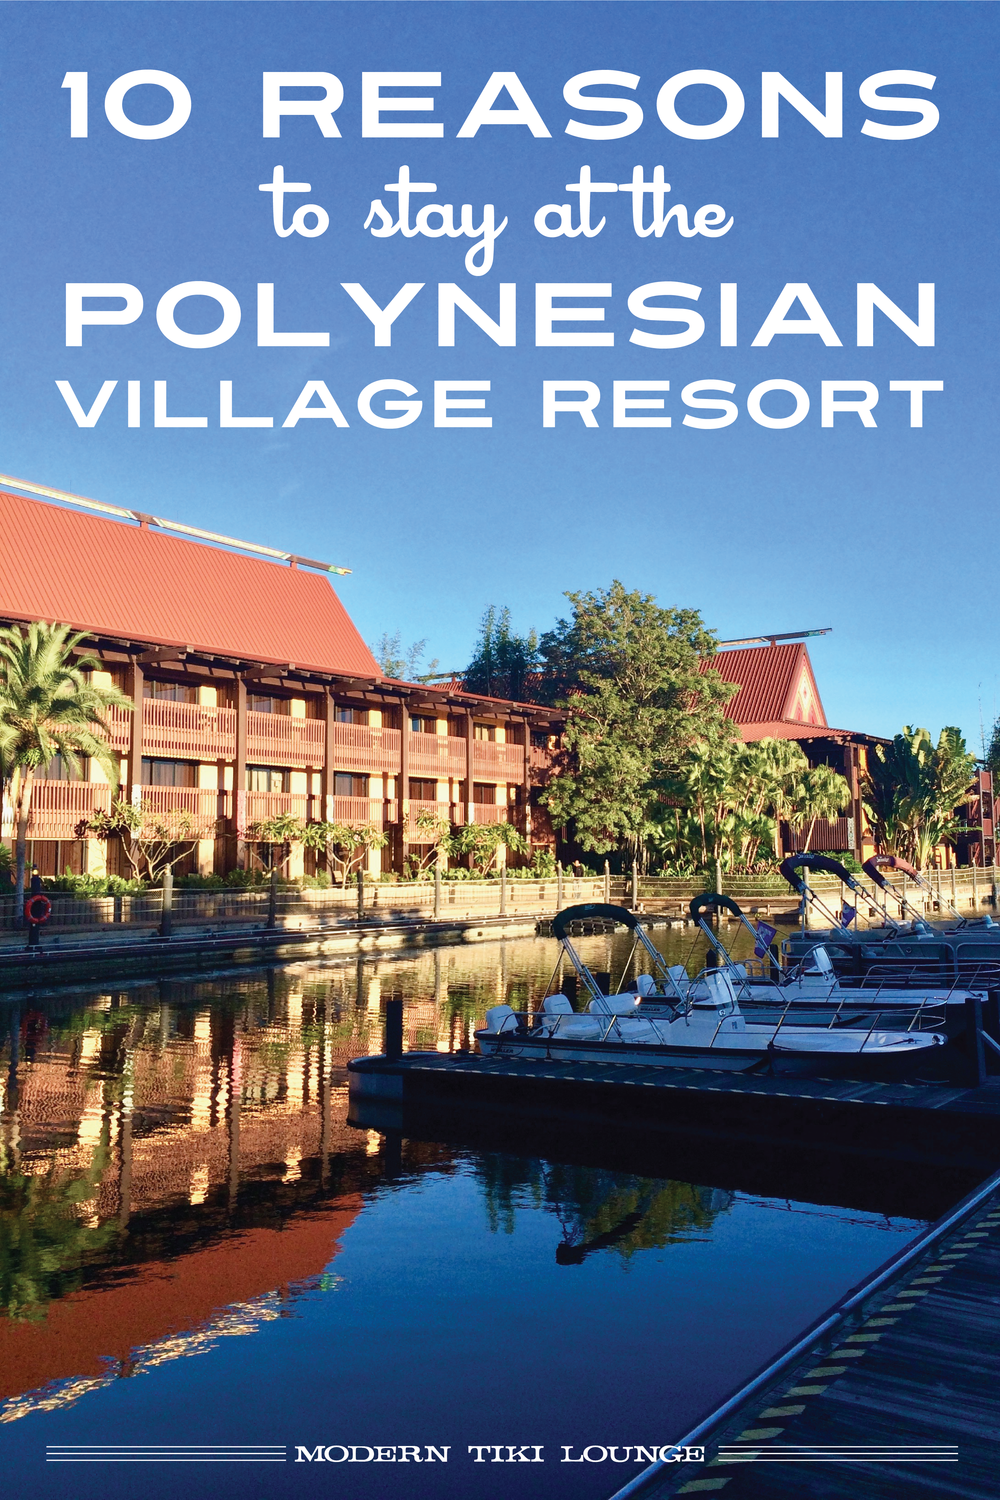 10-reasons-to-stay-at-the-polynesian-village-resort.jpg